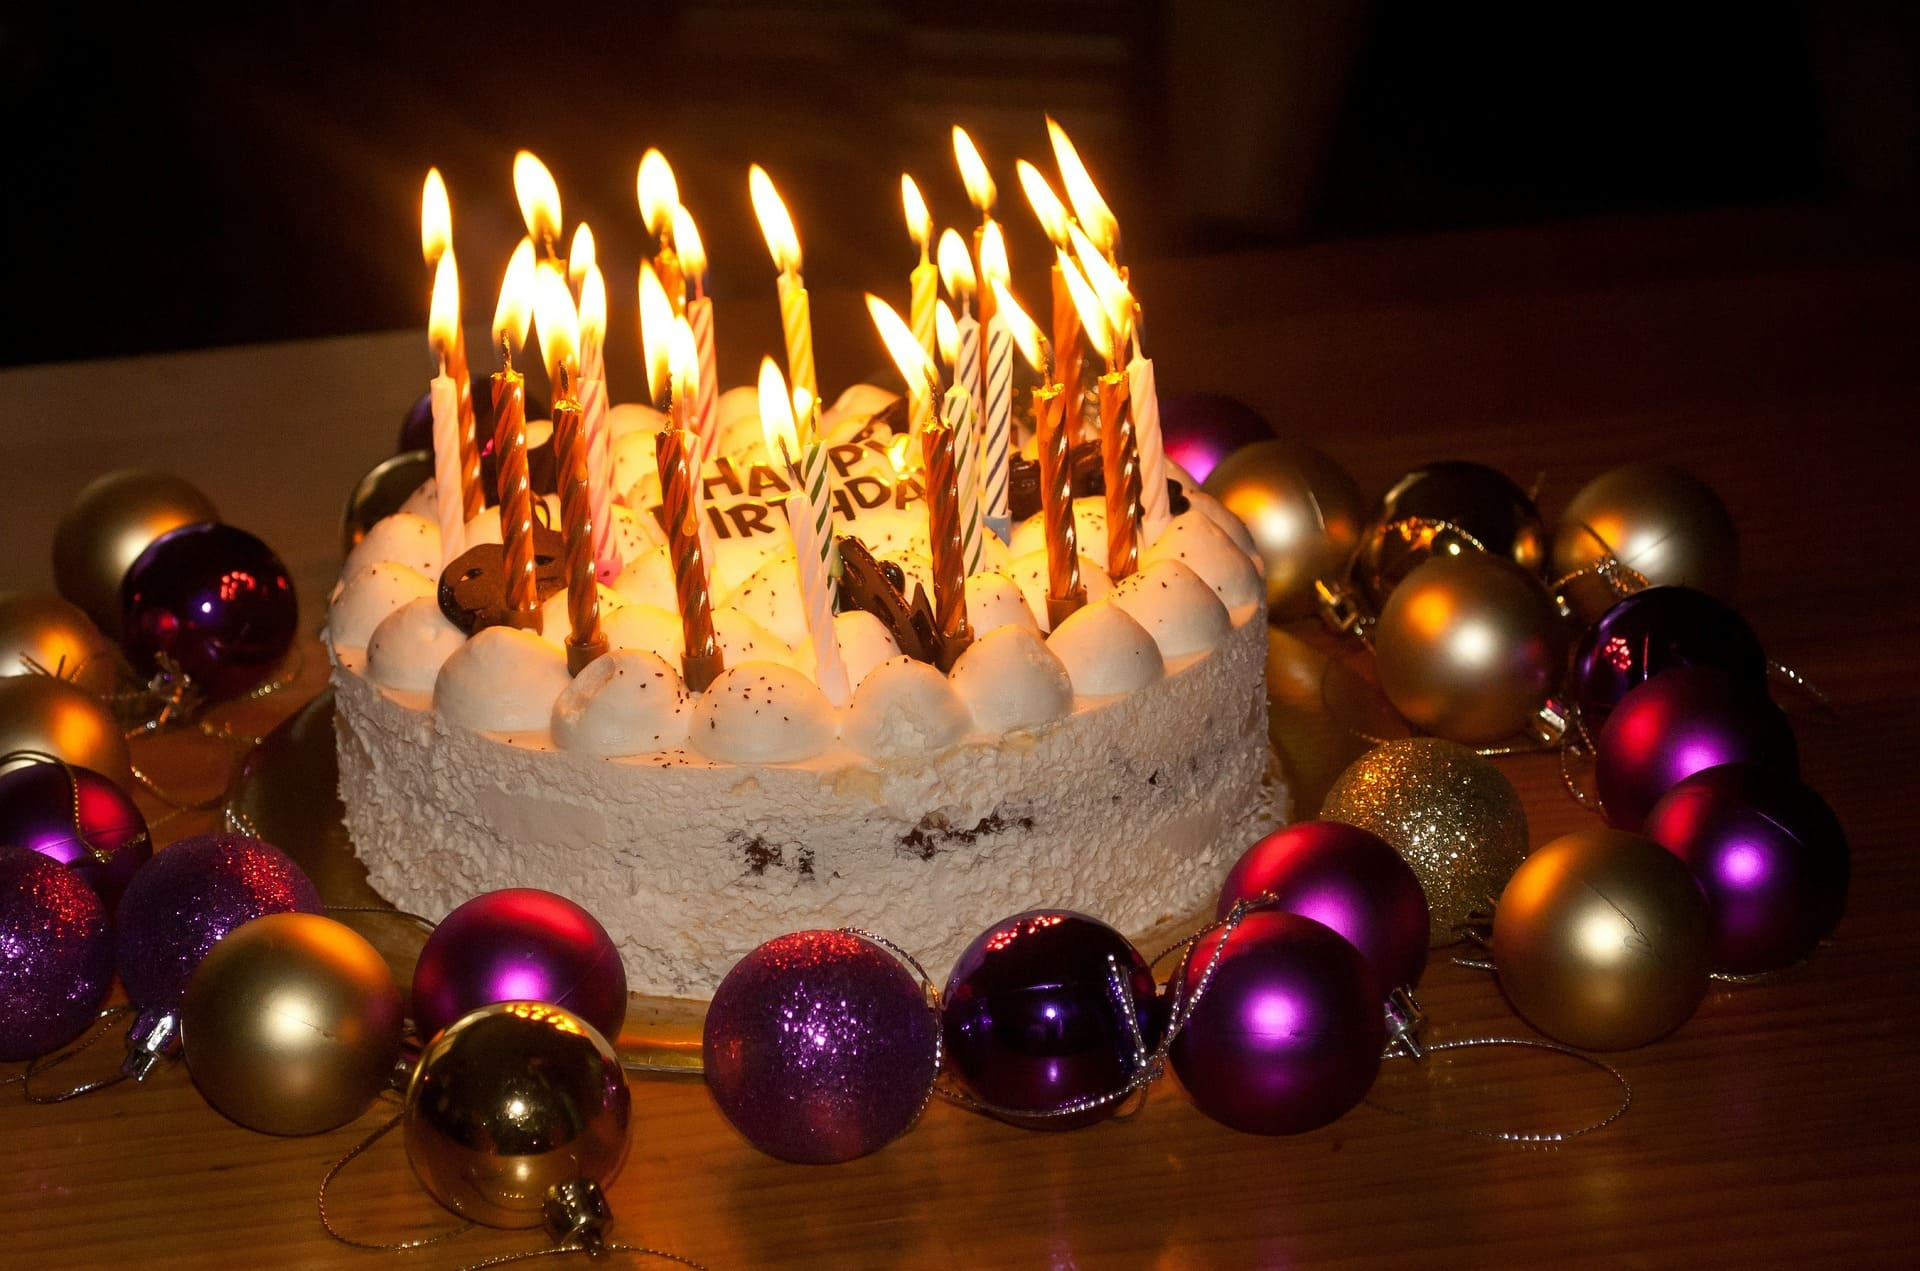 Birthday cake with candles | Source: Pixabay